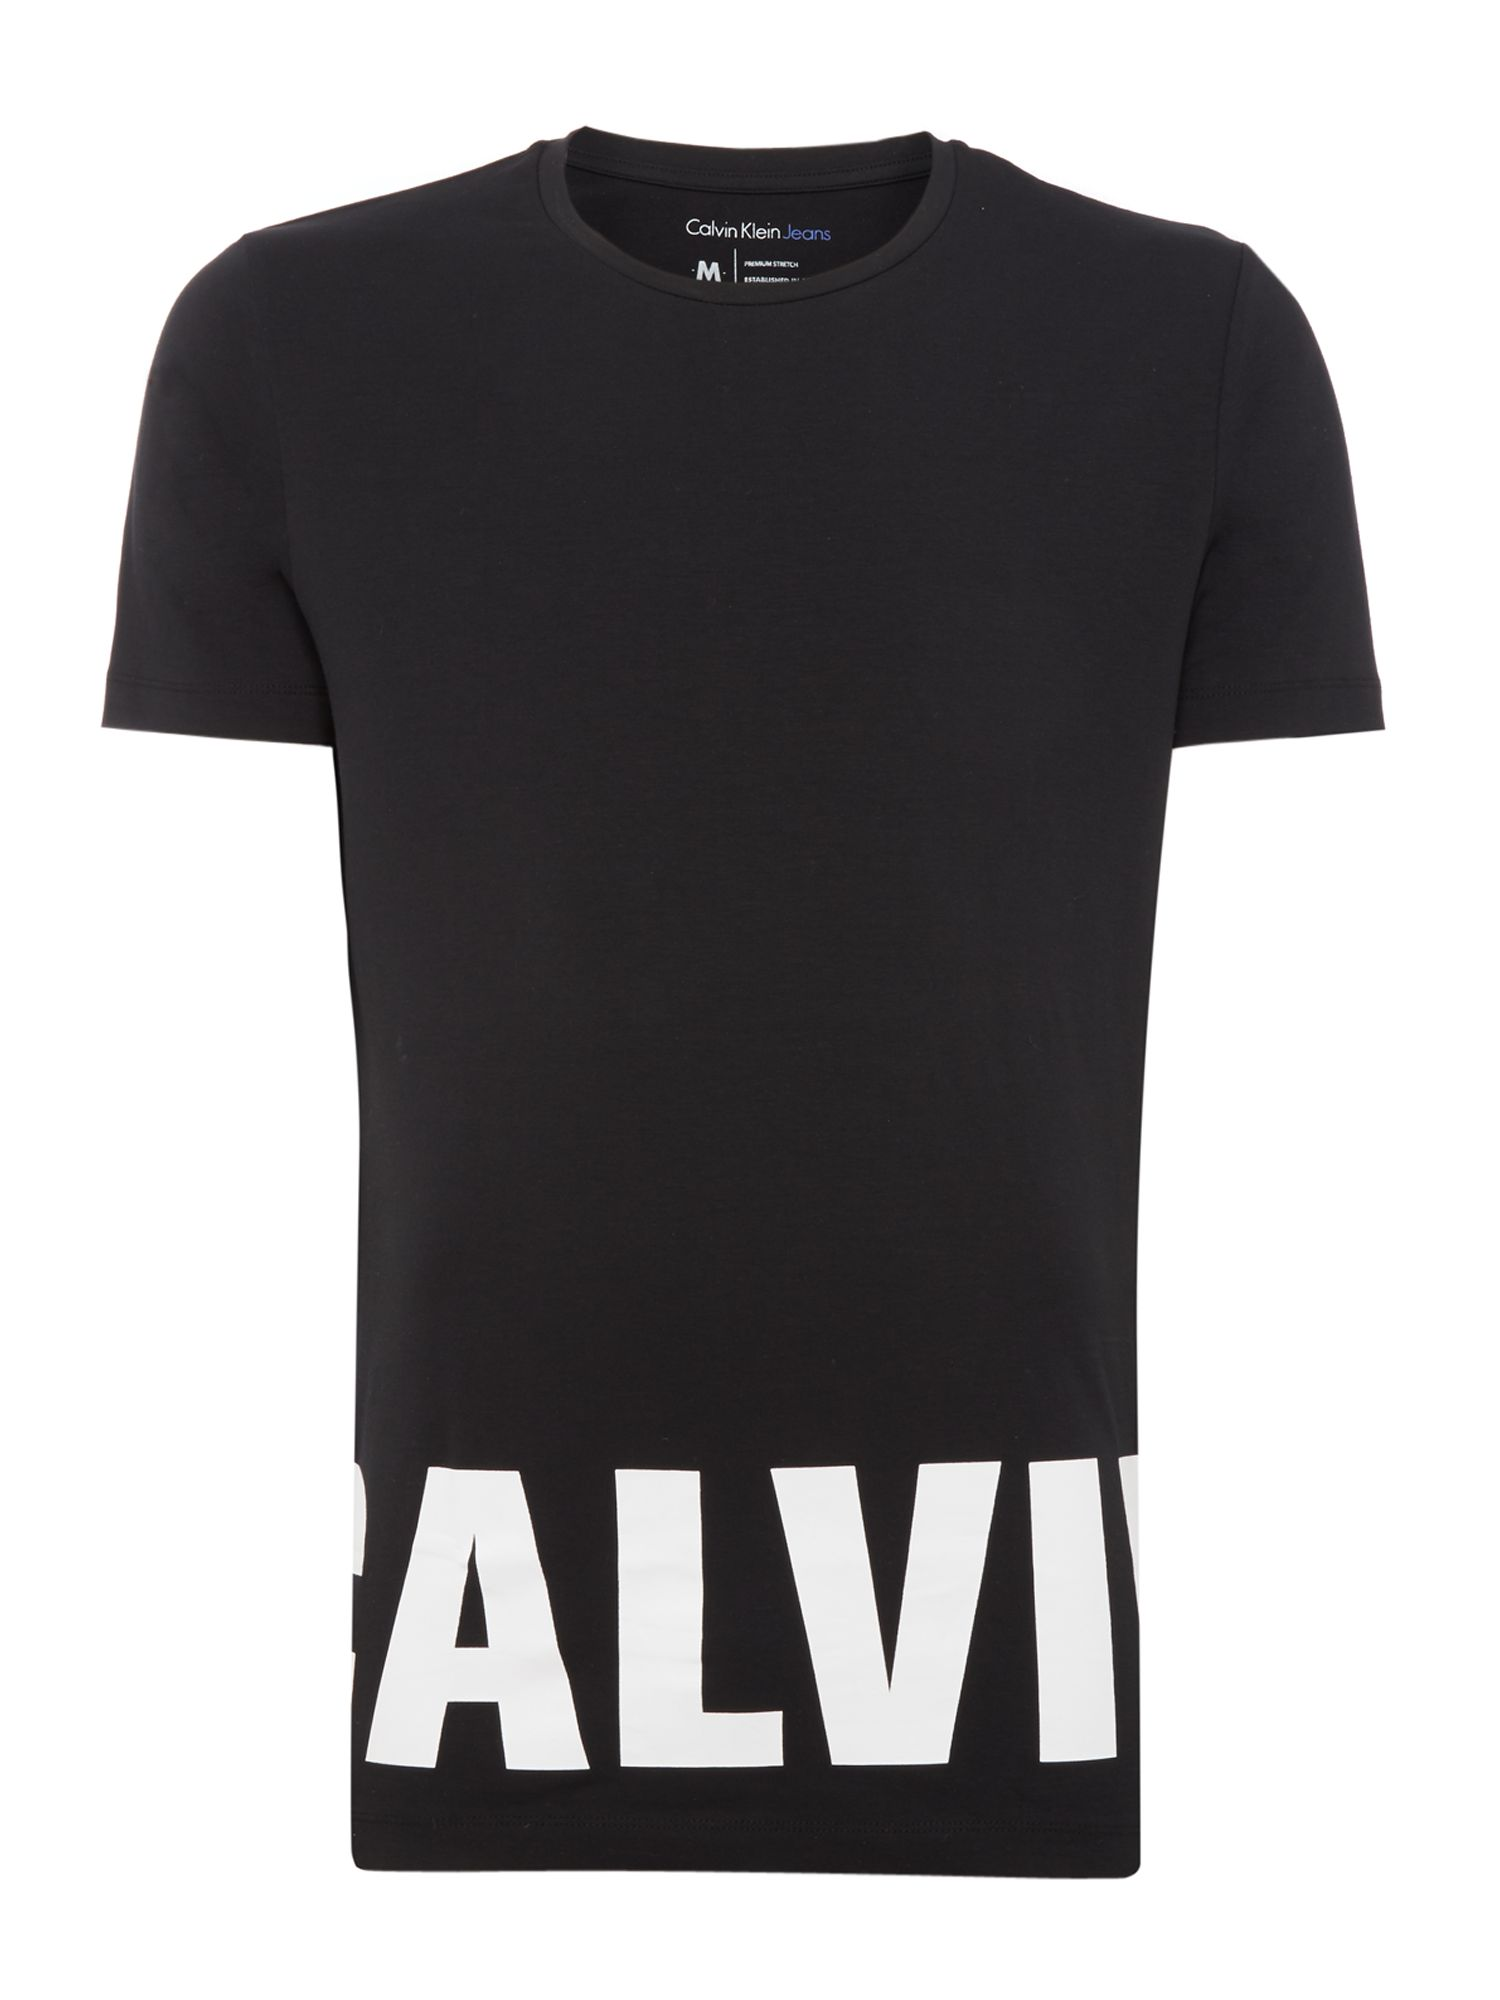 Men's Calvin Klein Troop Slim Fit T-shirt, Black